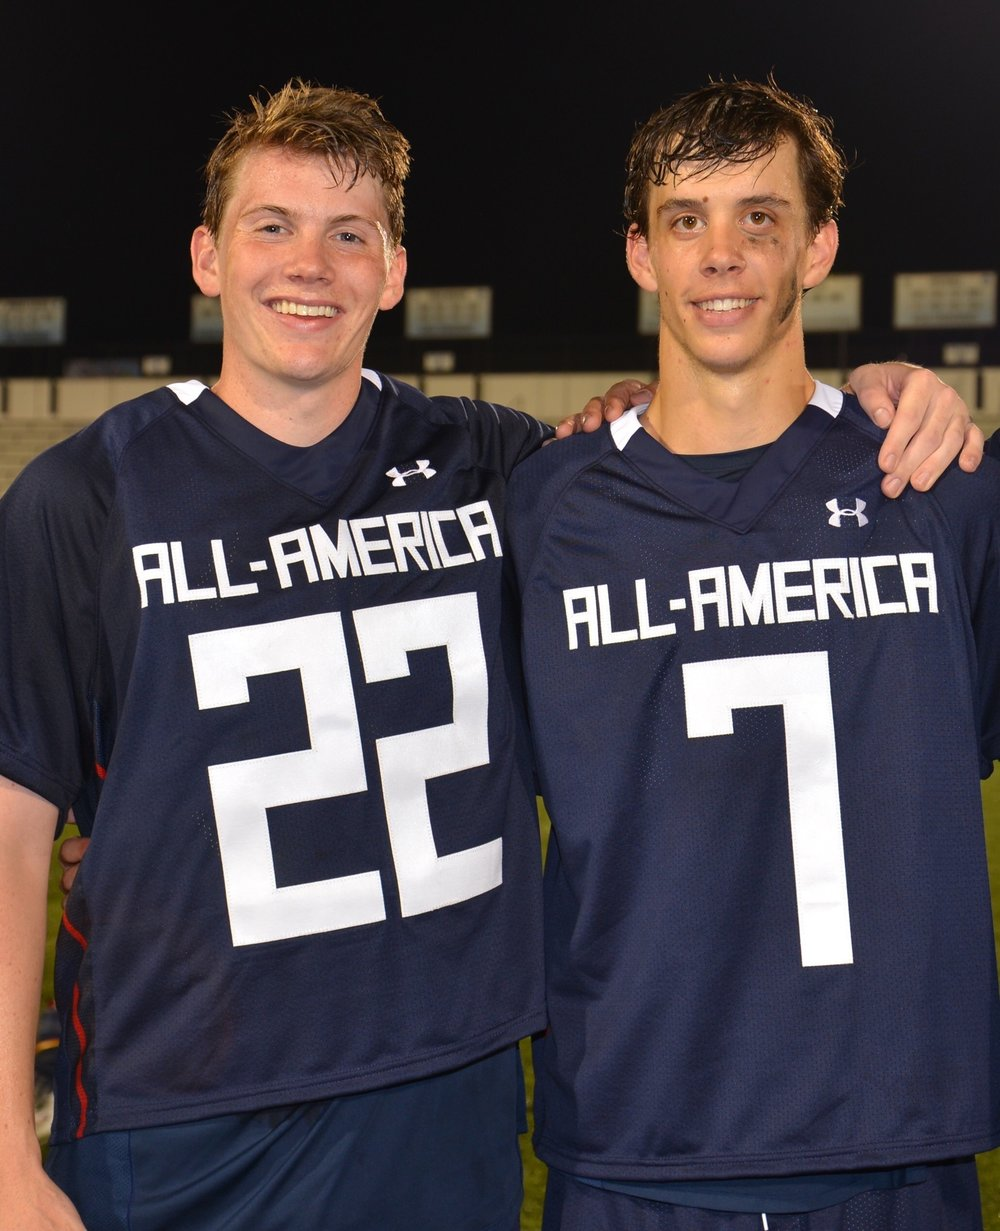 2018 Eclipse Team Members - Patrick Burkinshaw (UVA) & Xander Dixon (UVA)